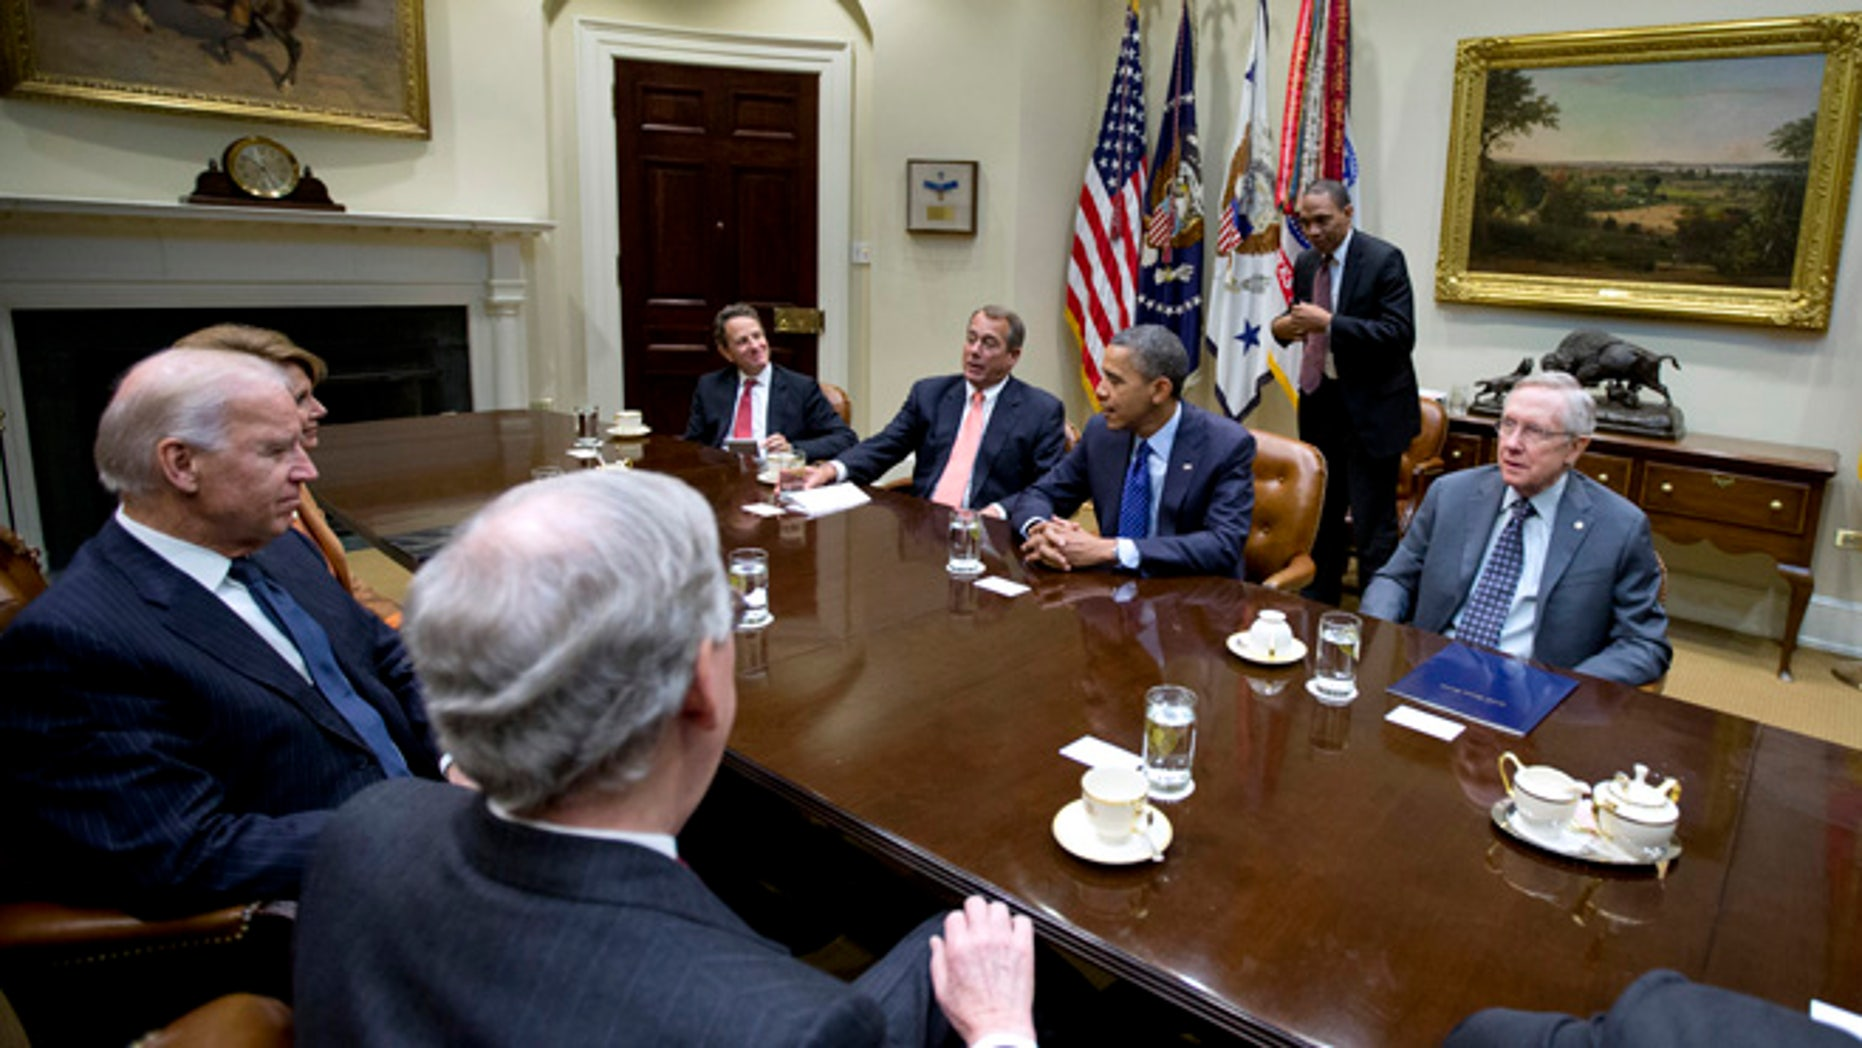 Nov. 16, 2012: President Barack Obama hosts a meeting of the bipartisan, bicameral leadership of Congress to discuss the deficit and economy in the Roosevelt Room of the White House in Washington.